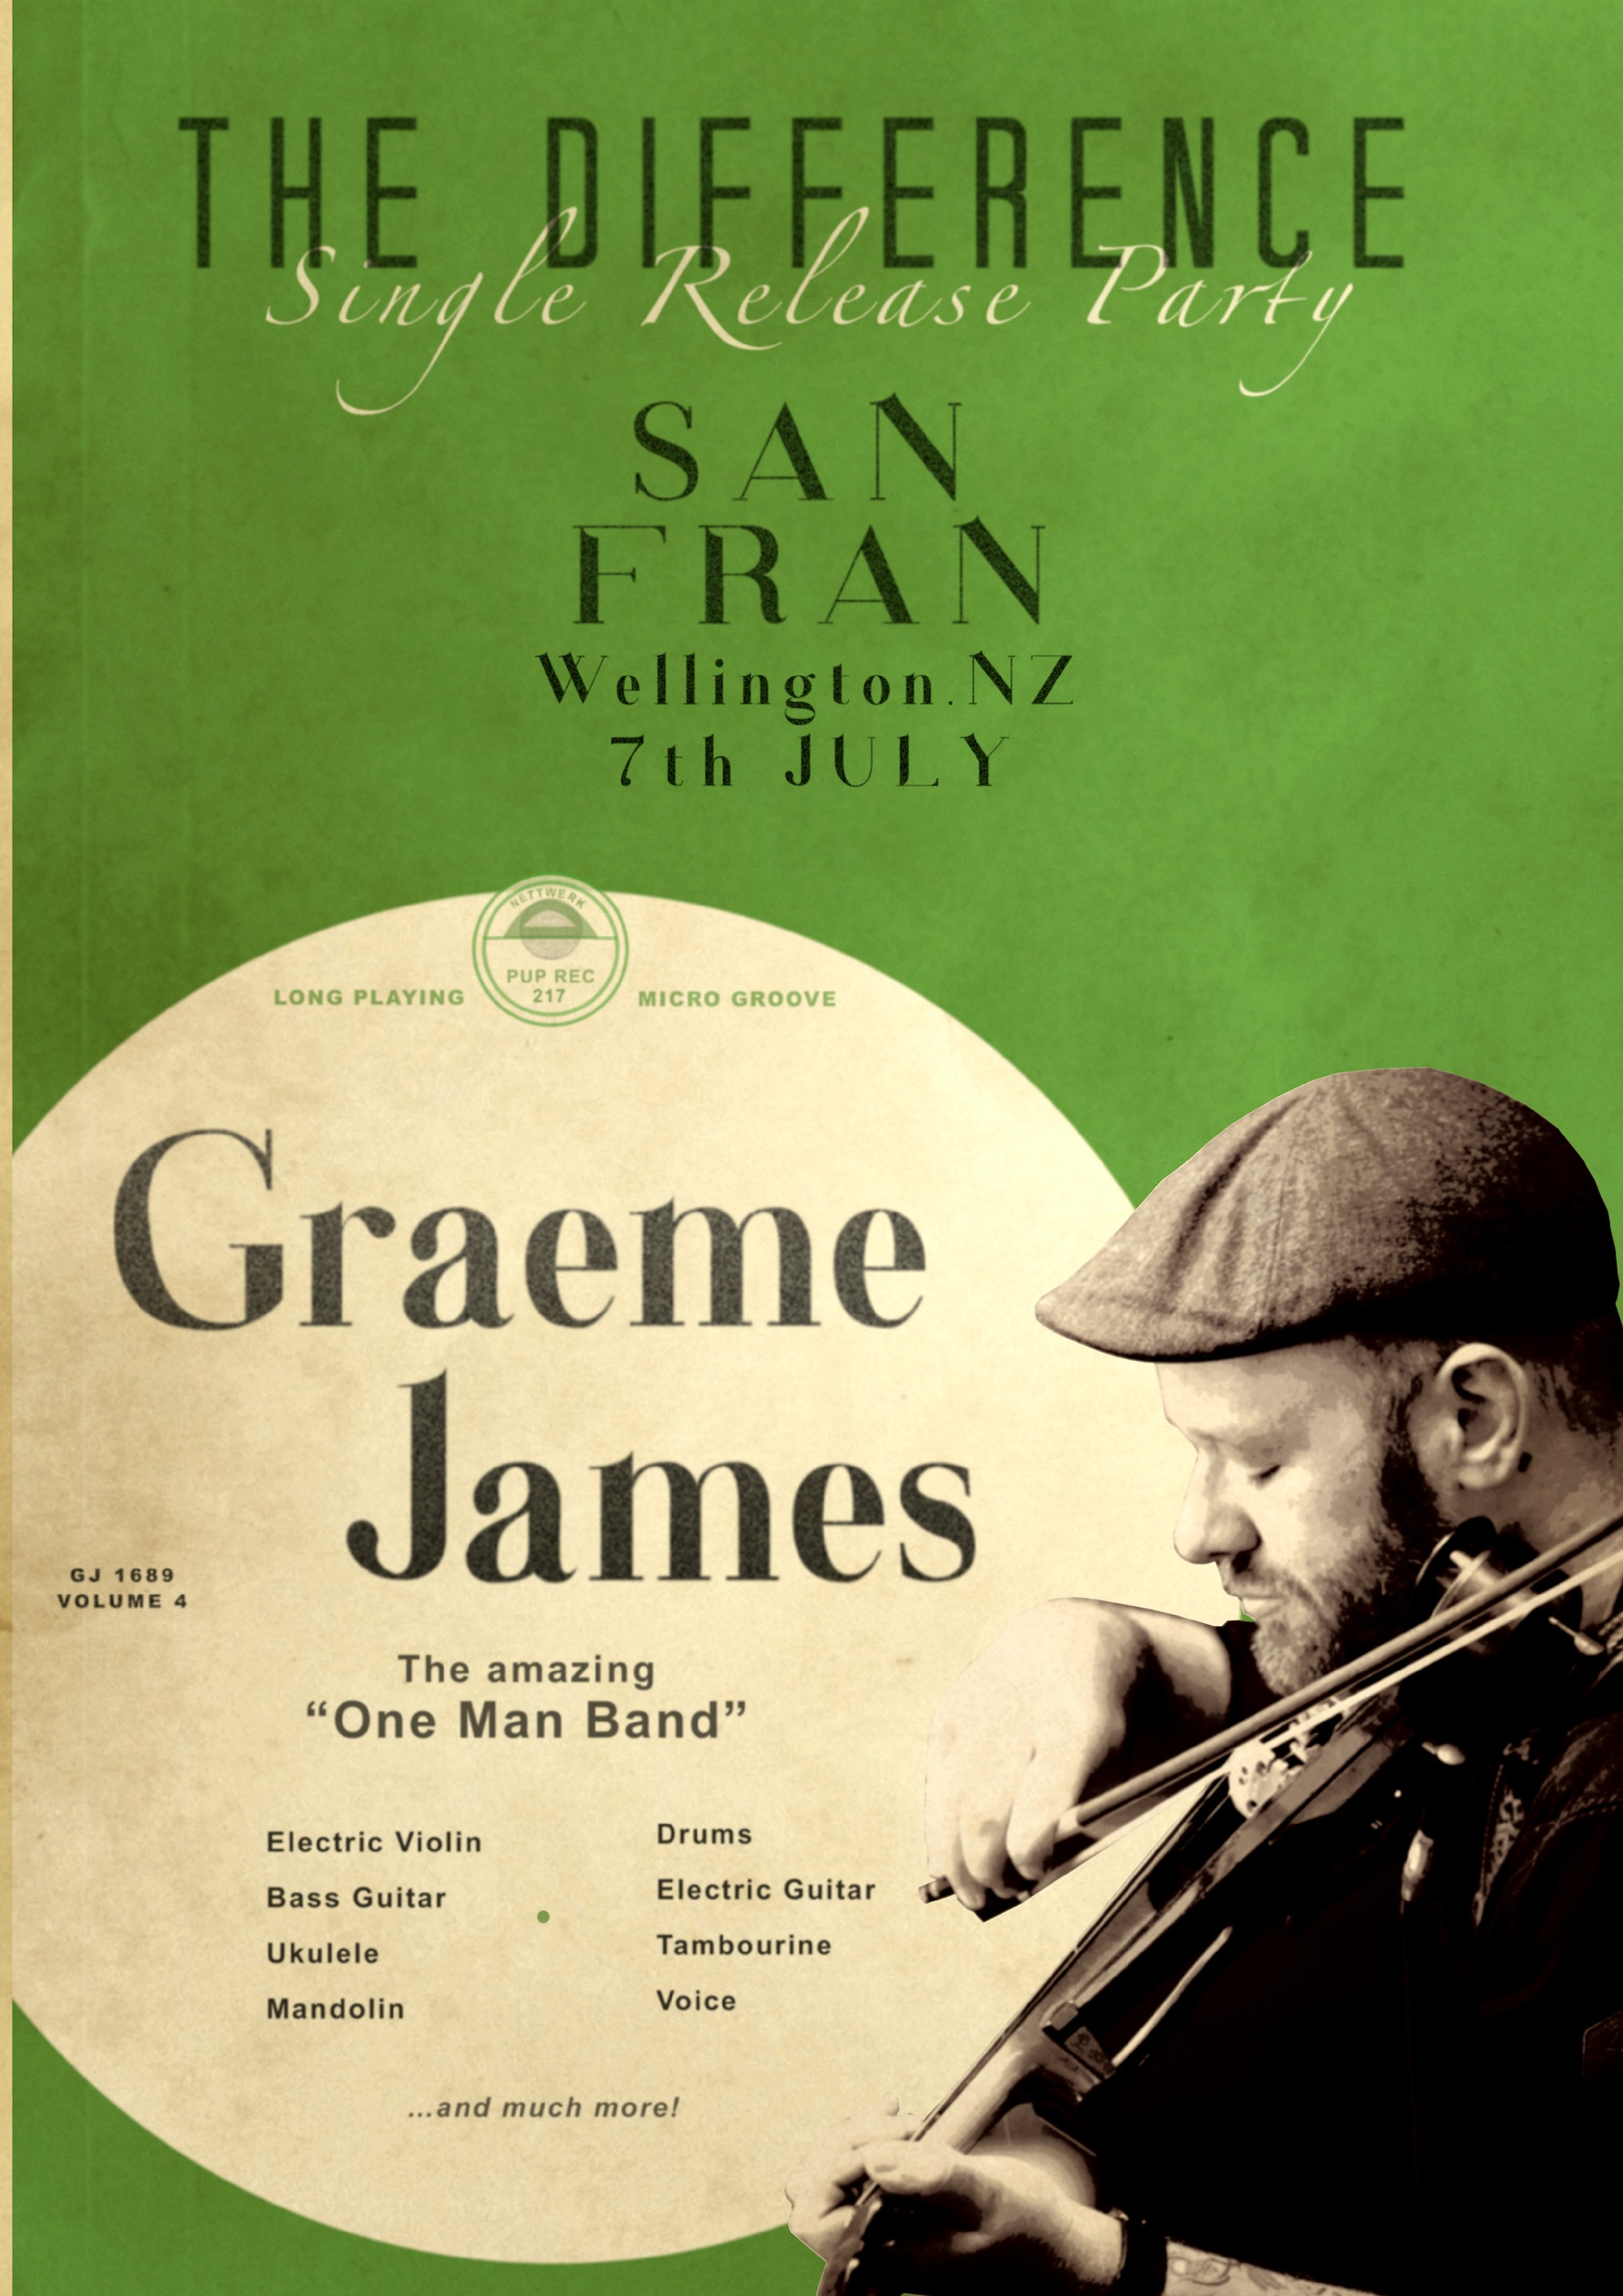 Graeme James - The Difference Single Release Party